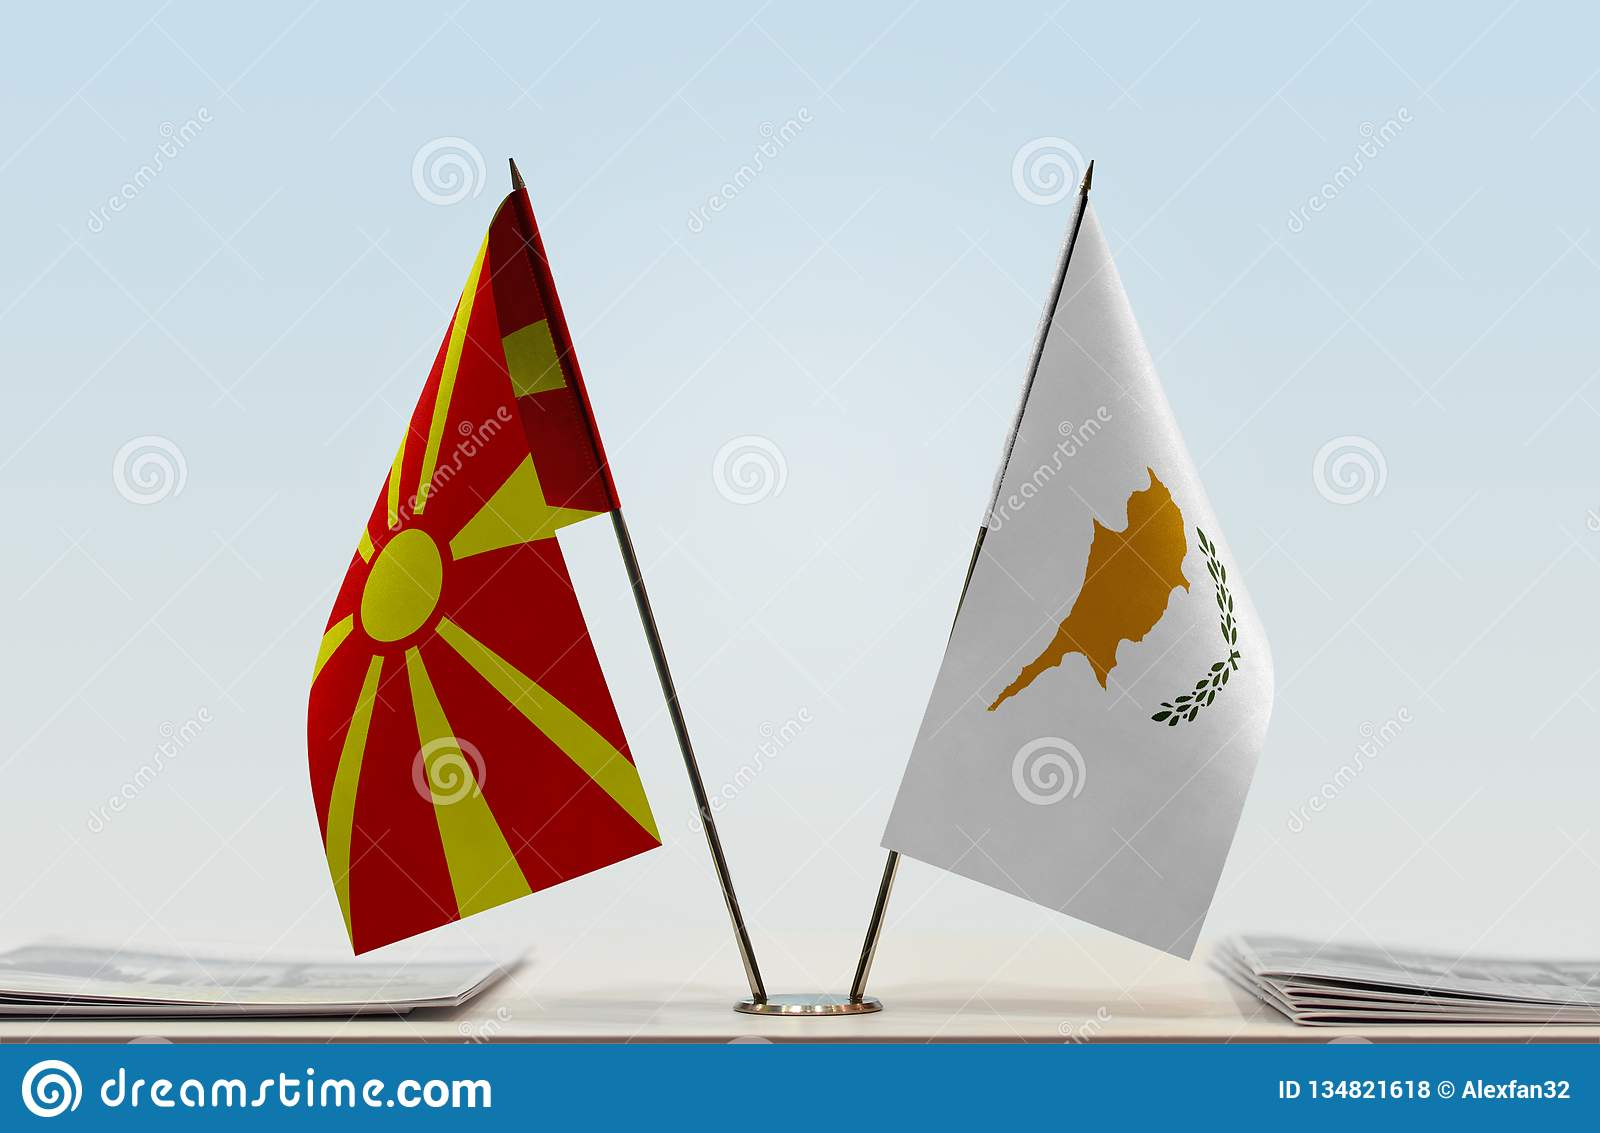 Flags of Macedonia and Cyprus